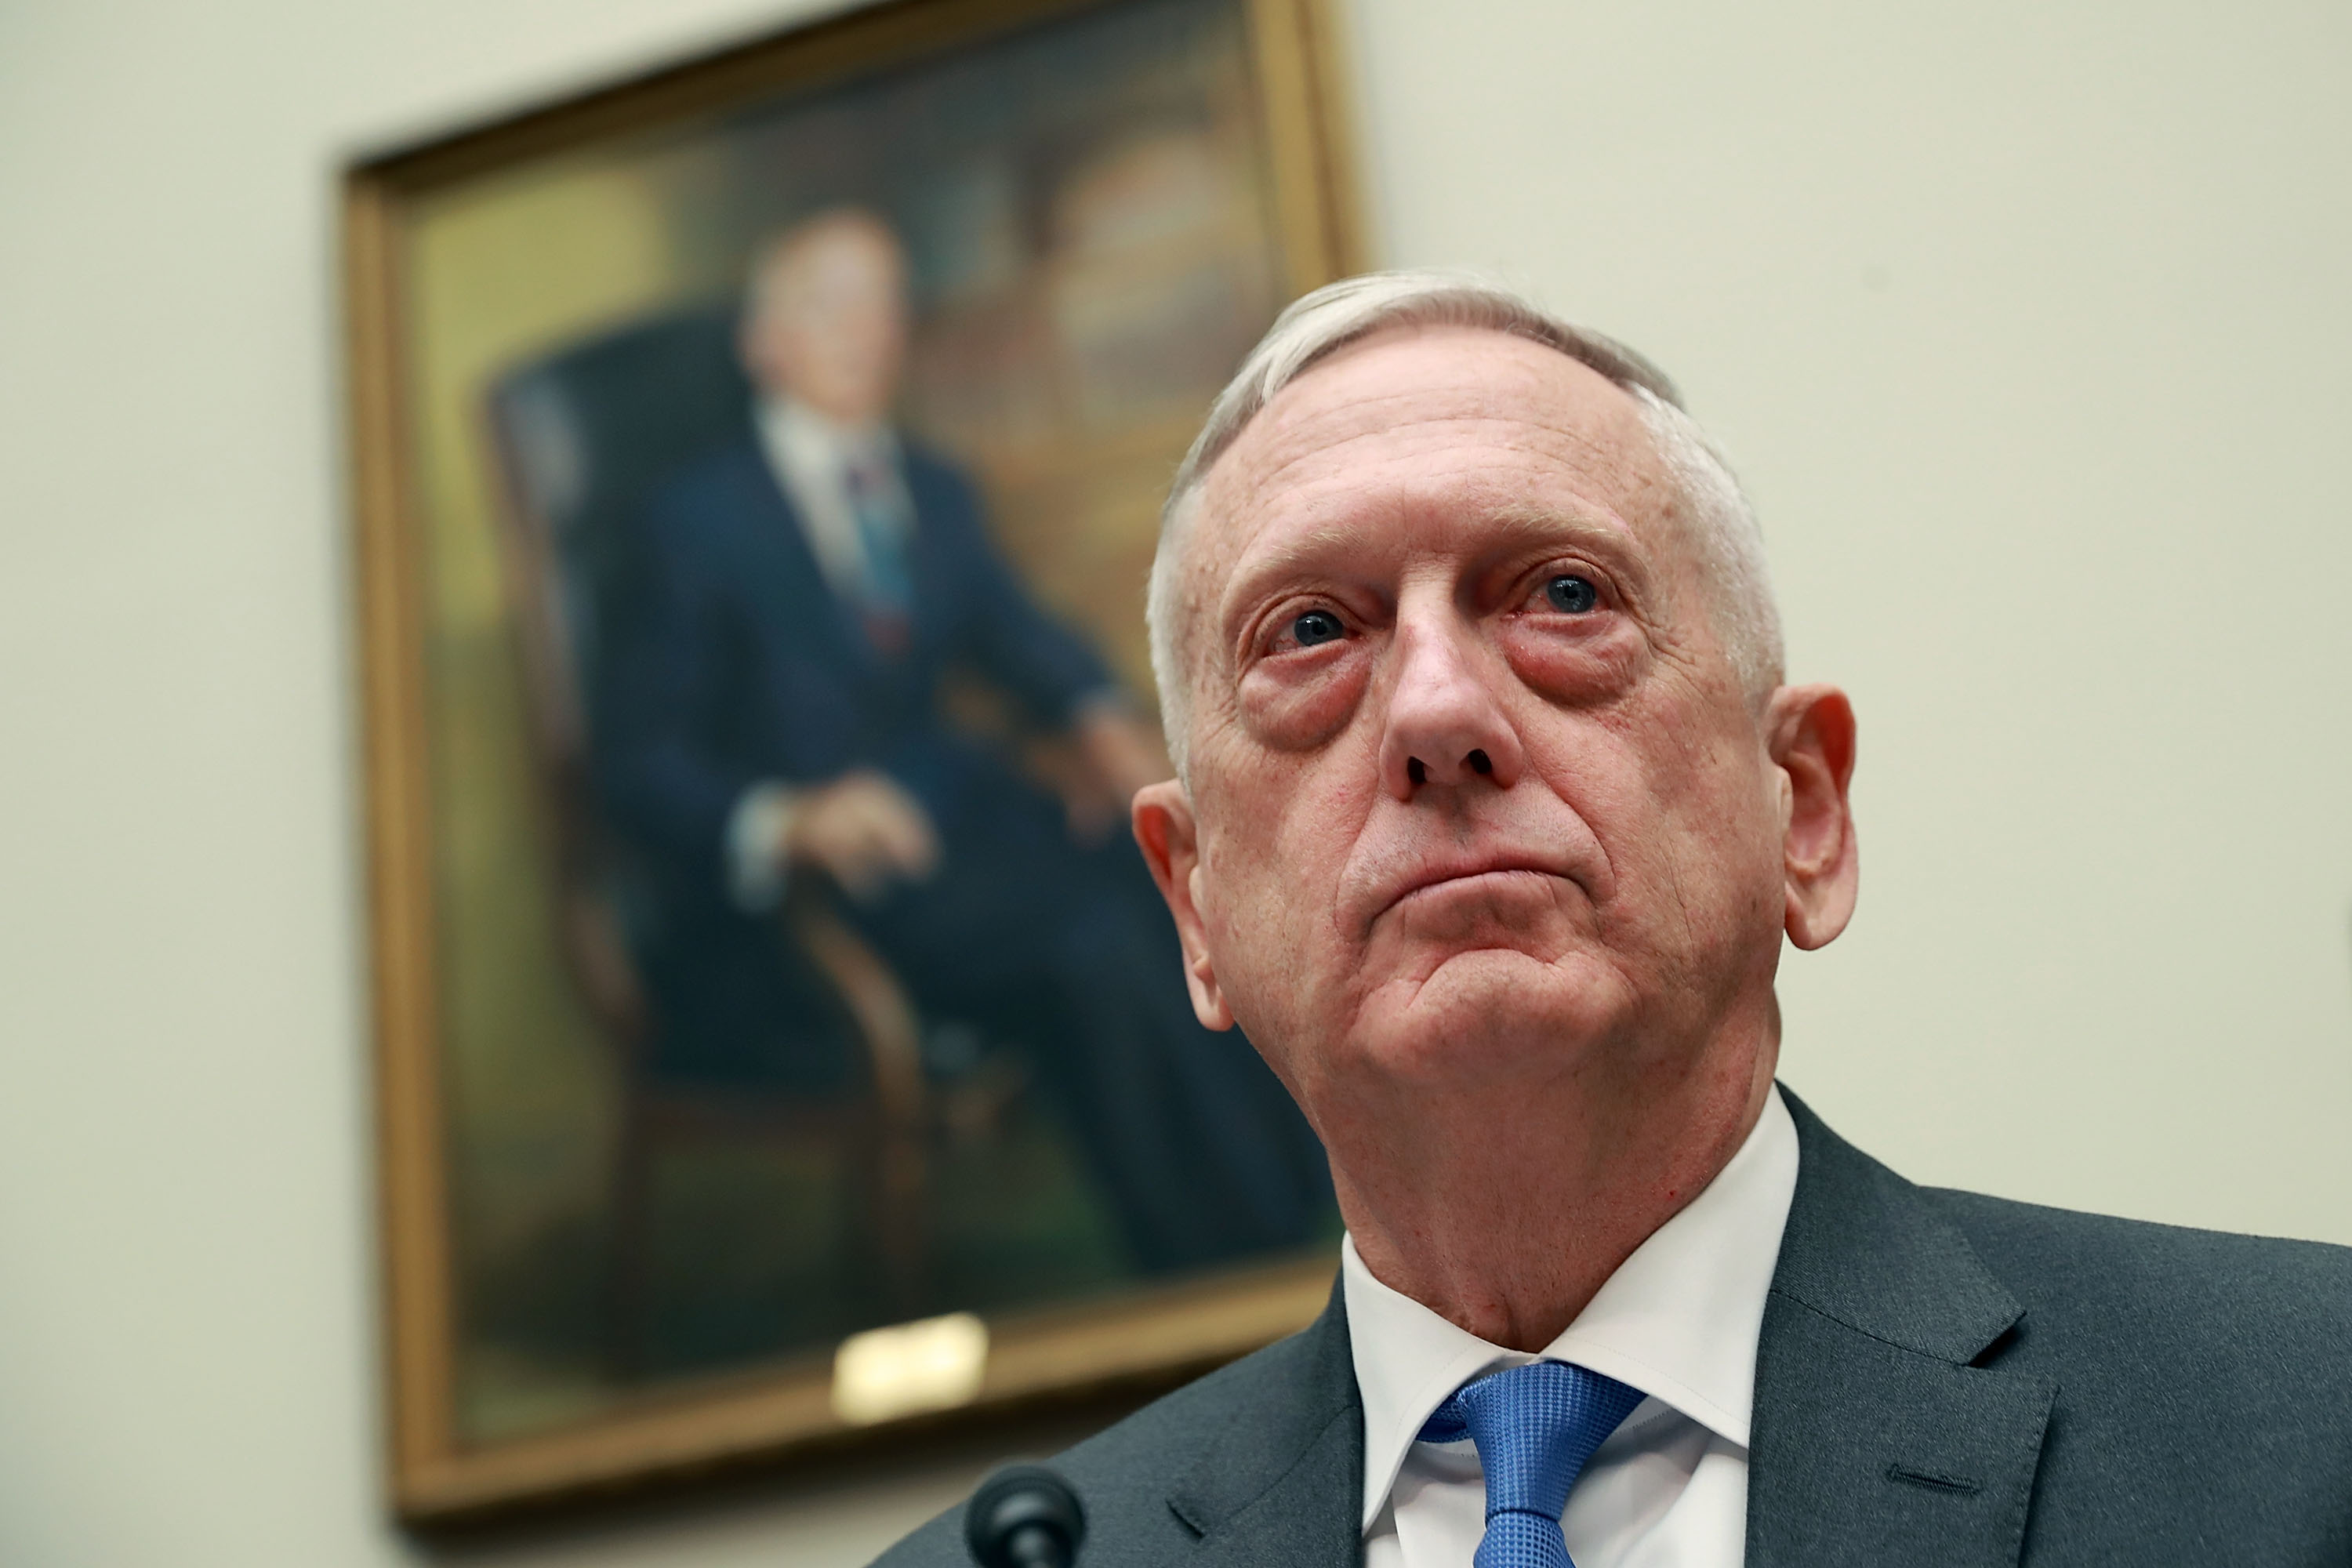 Defense Secretary Jim Mattis quit in December over President Trump's announced immediate withdrawal from Syria, which Trump has since partially reversed. (Chip Somodevilla/Getty Images)